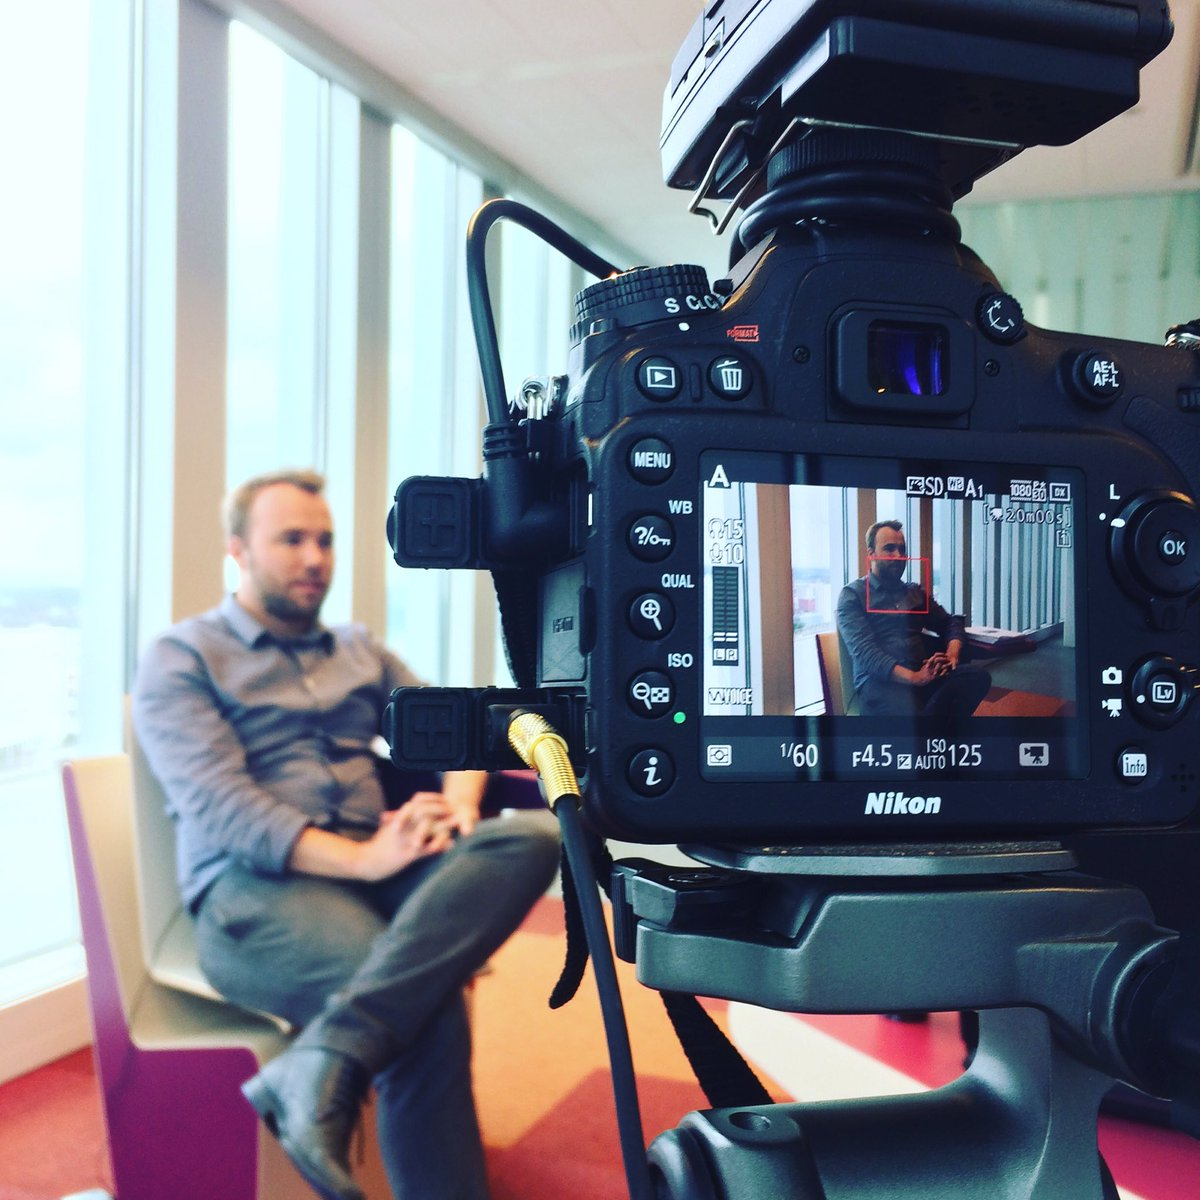 [NETHERLANDS] First interview, back on the continent, with Jillian BENDERS (Urban Development &amp; Management at Gemeente Rotterdam) #TREVE <br>http://pic.twitter.com/CjFZSNrxDU